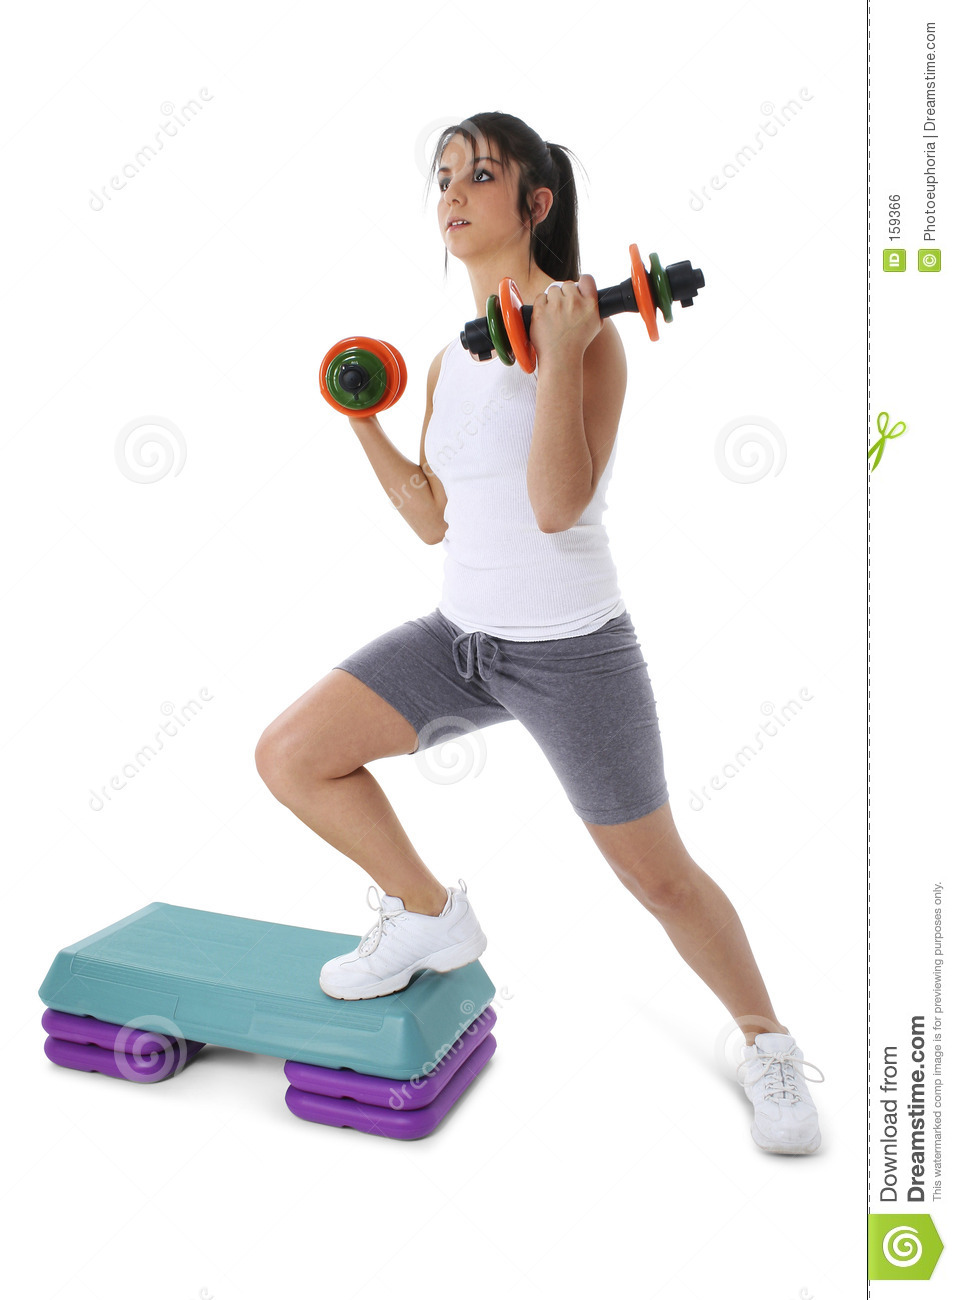 Teen Girl On Aerobic Step With Hand Weights